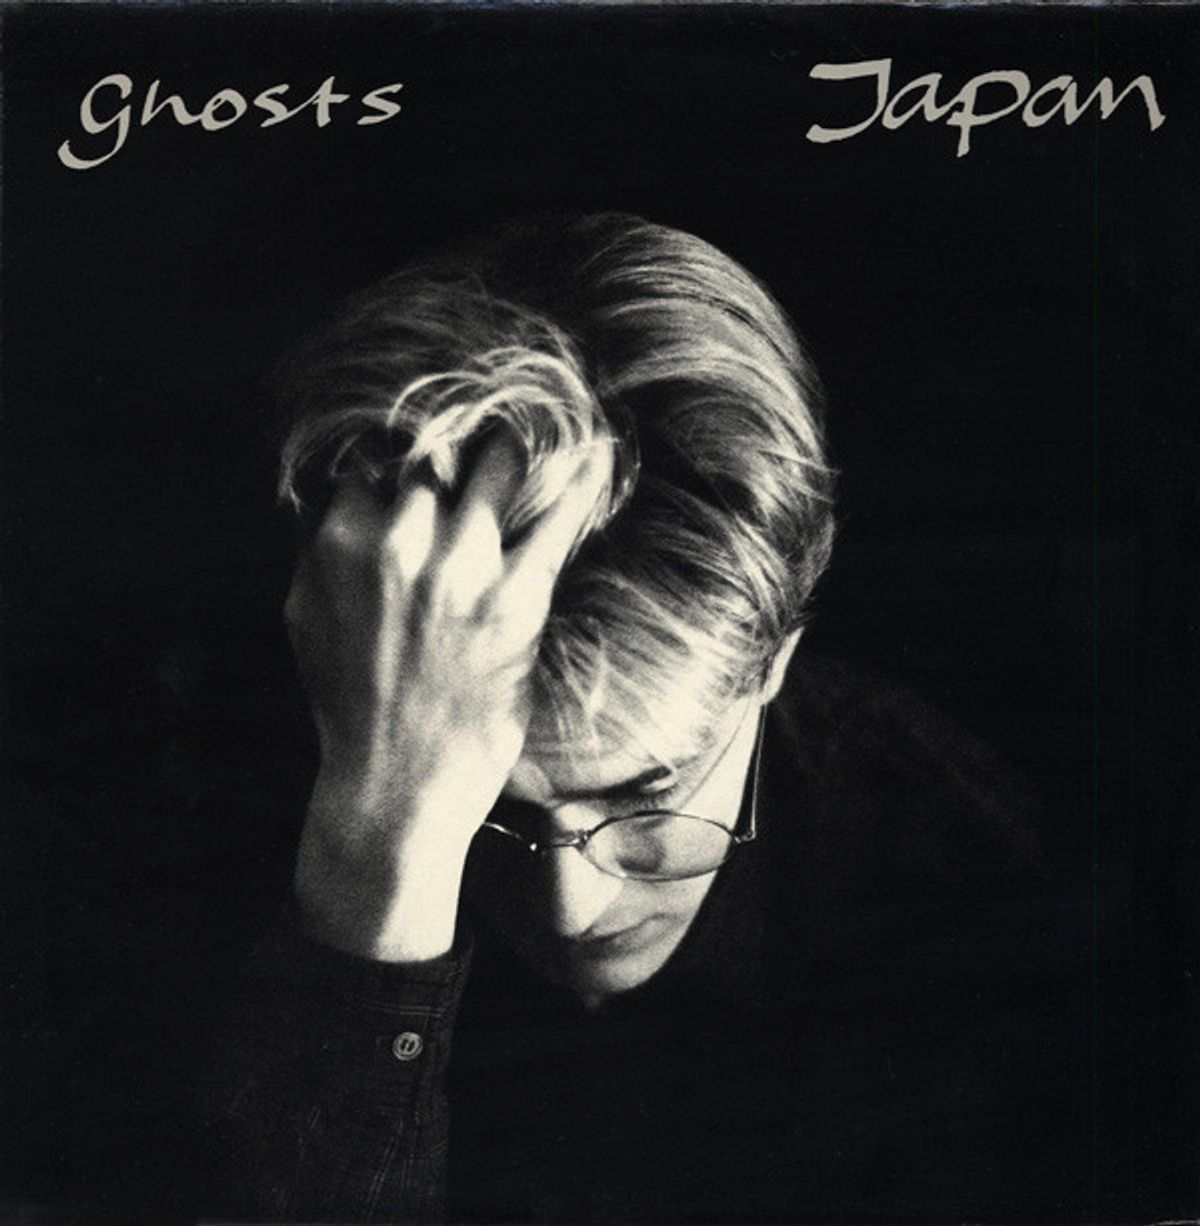 #DavidSylvian - Japan - Ghosts (1981).